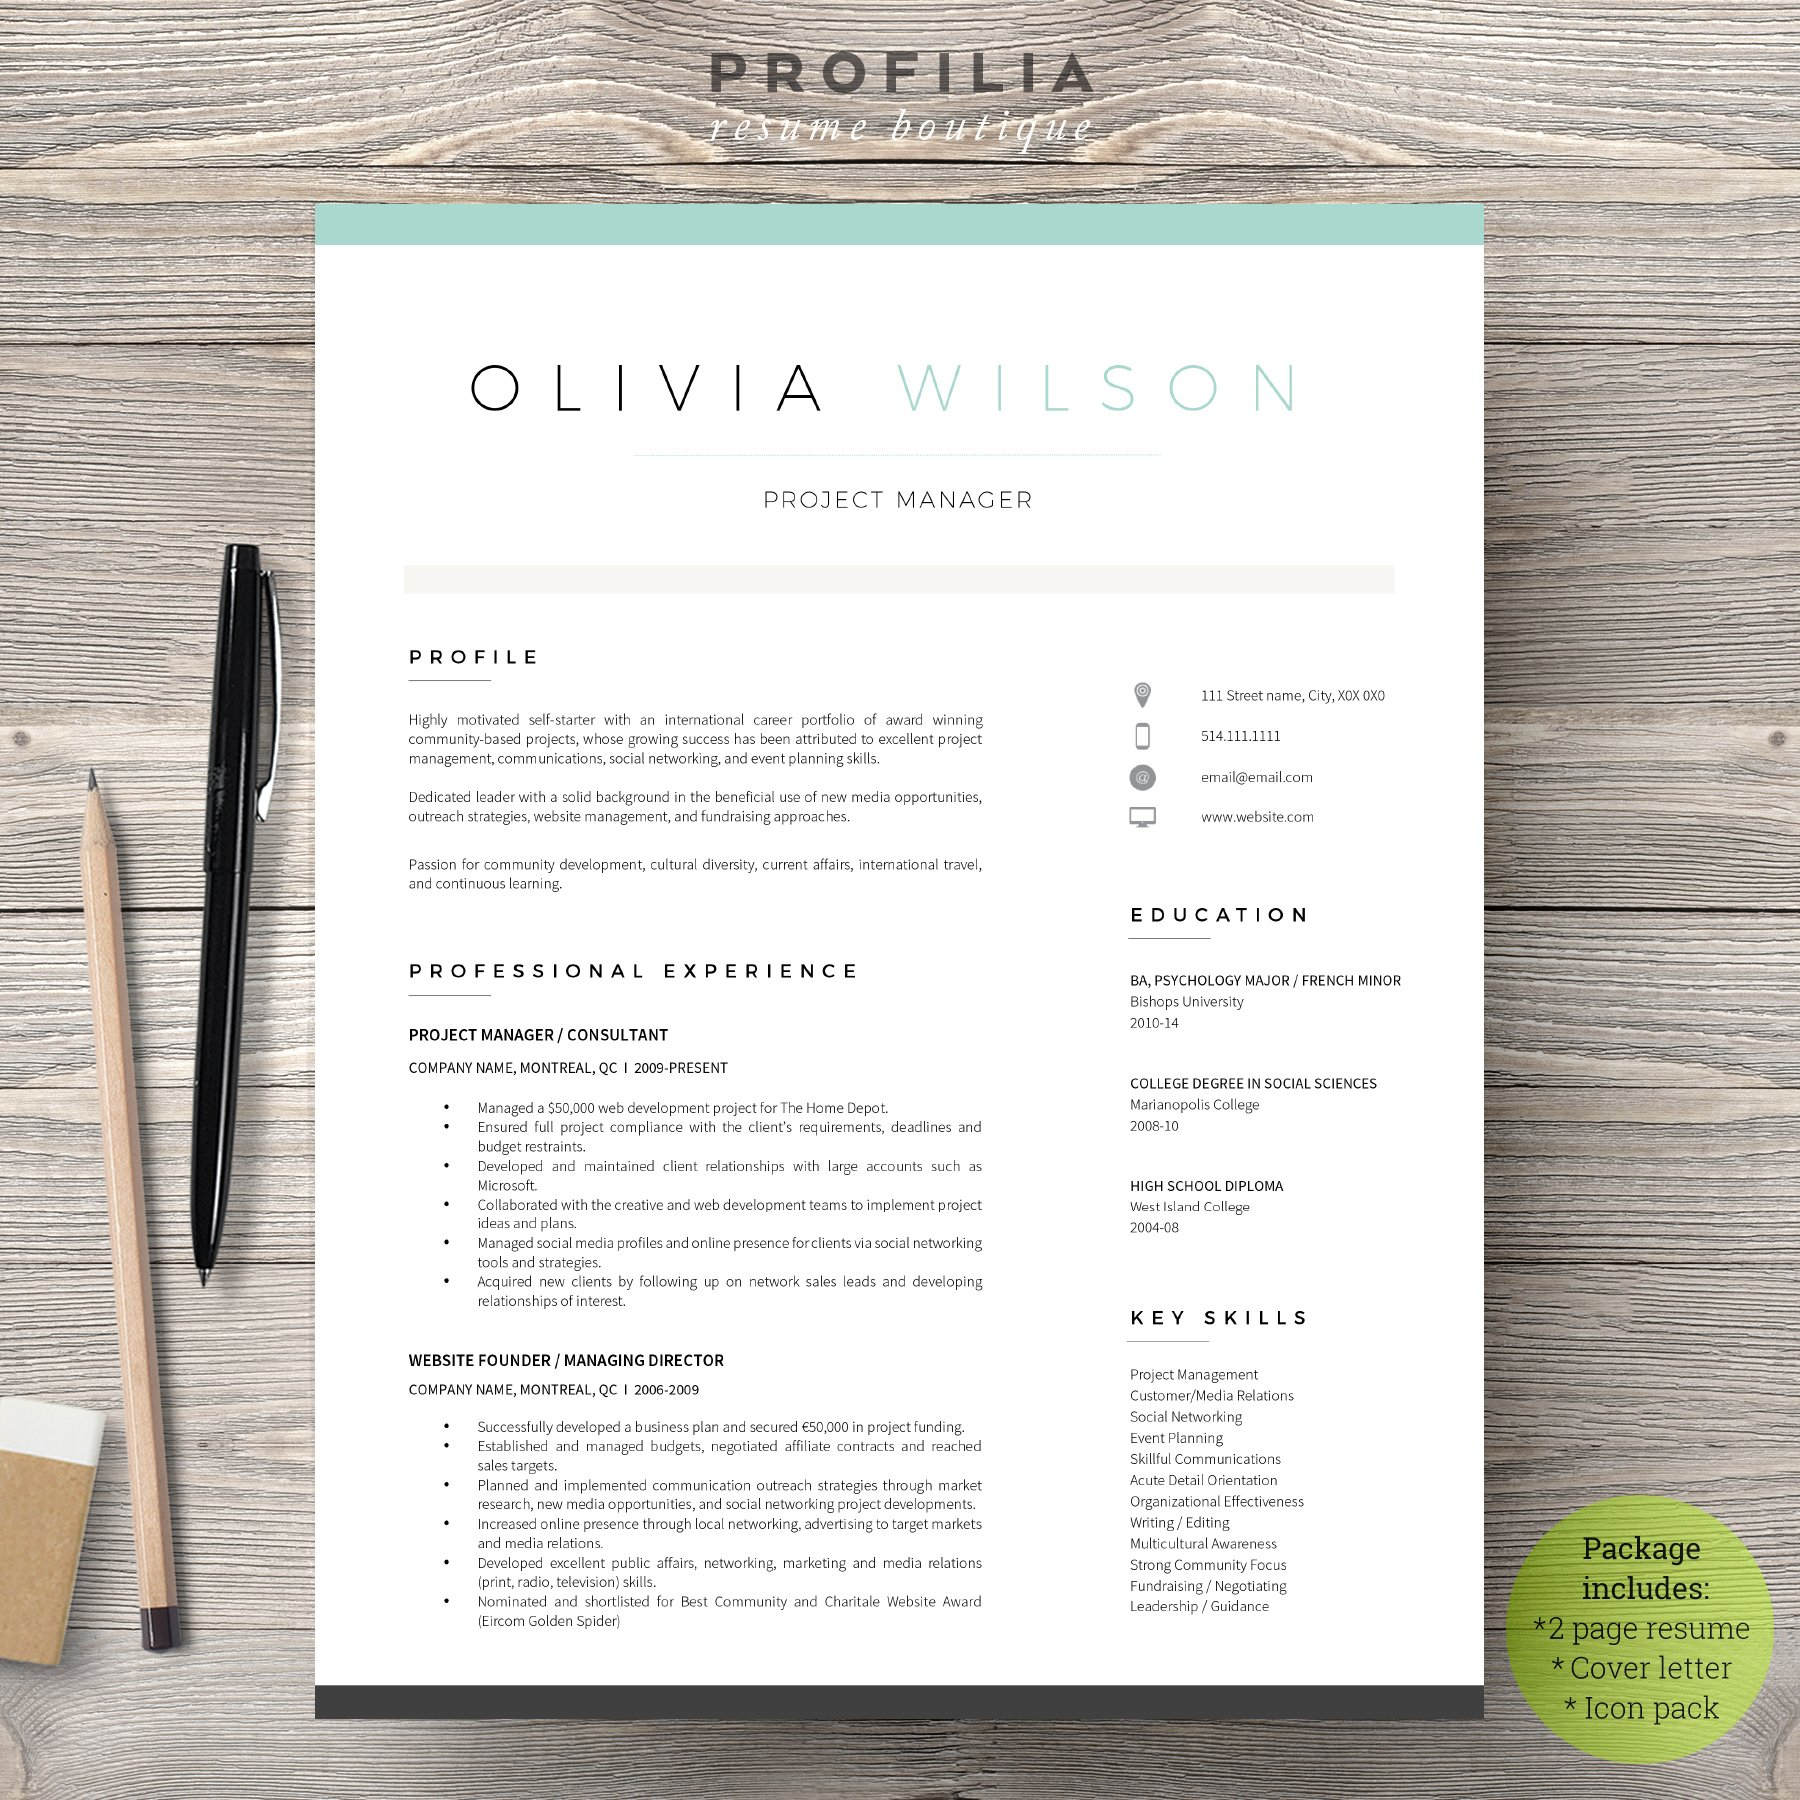 Word resume cover letter template resume templates creative market thecheapjerseys Choice Image